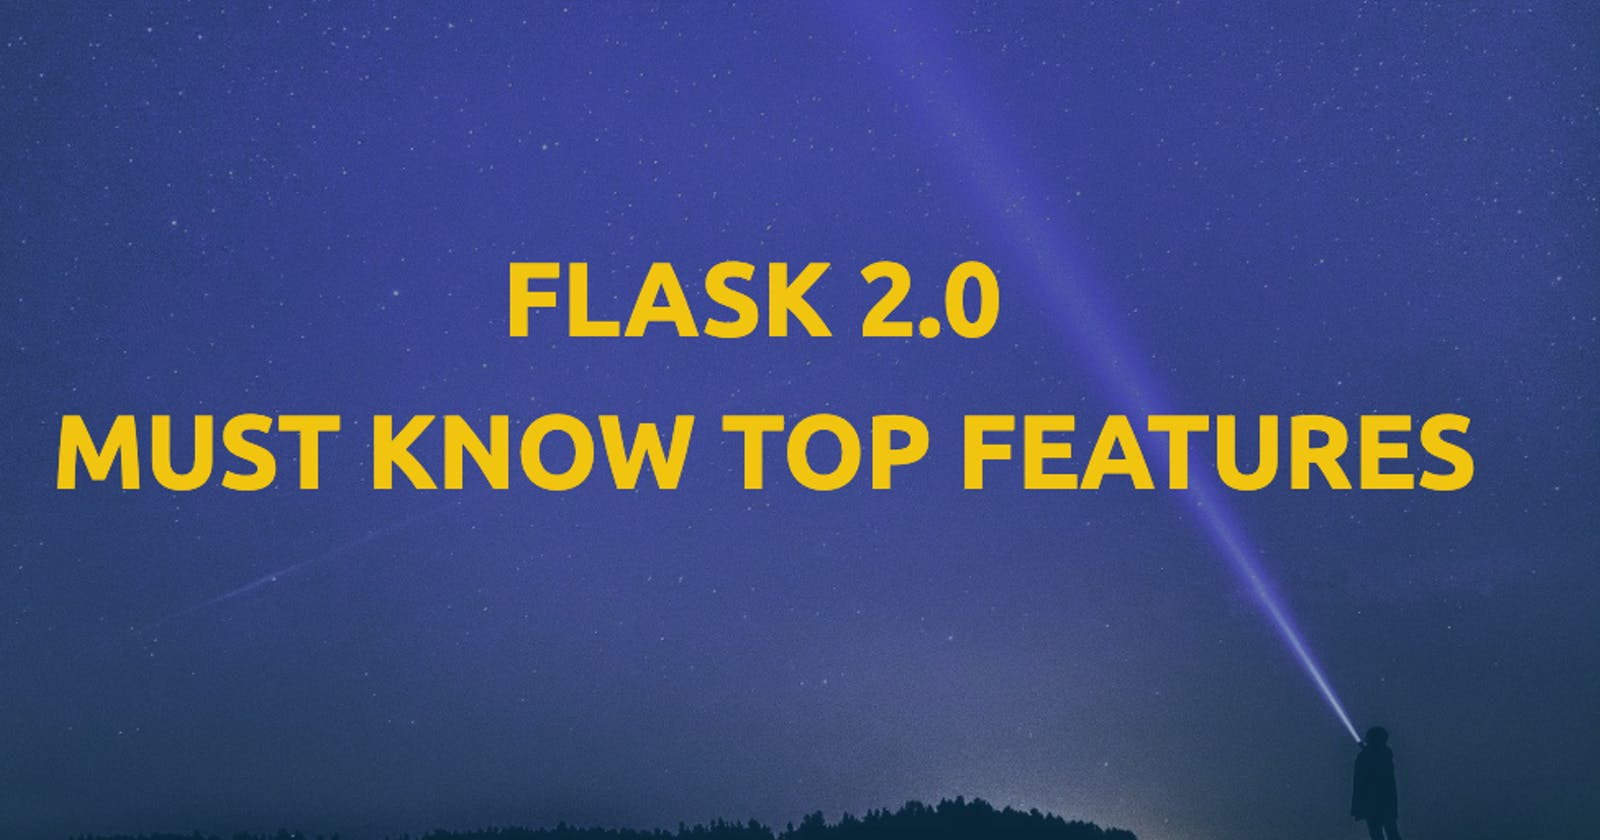 Top Flask 2.0 features you must checkout